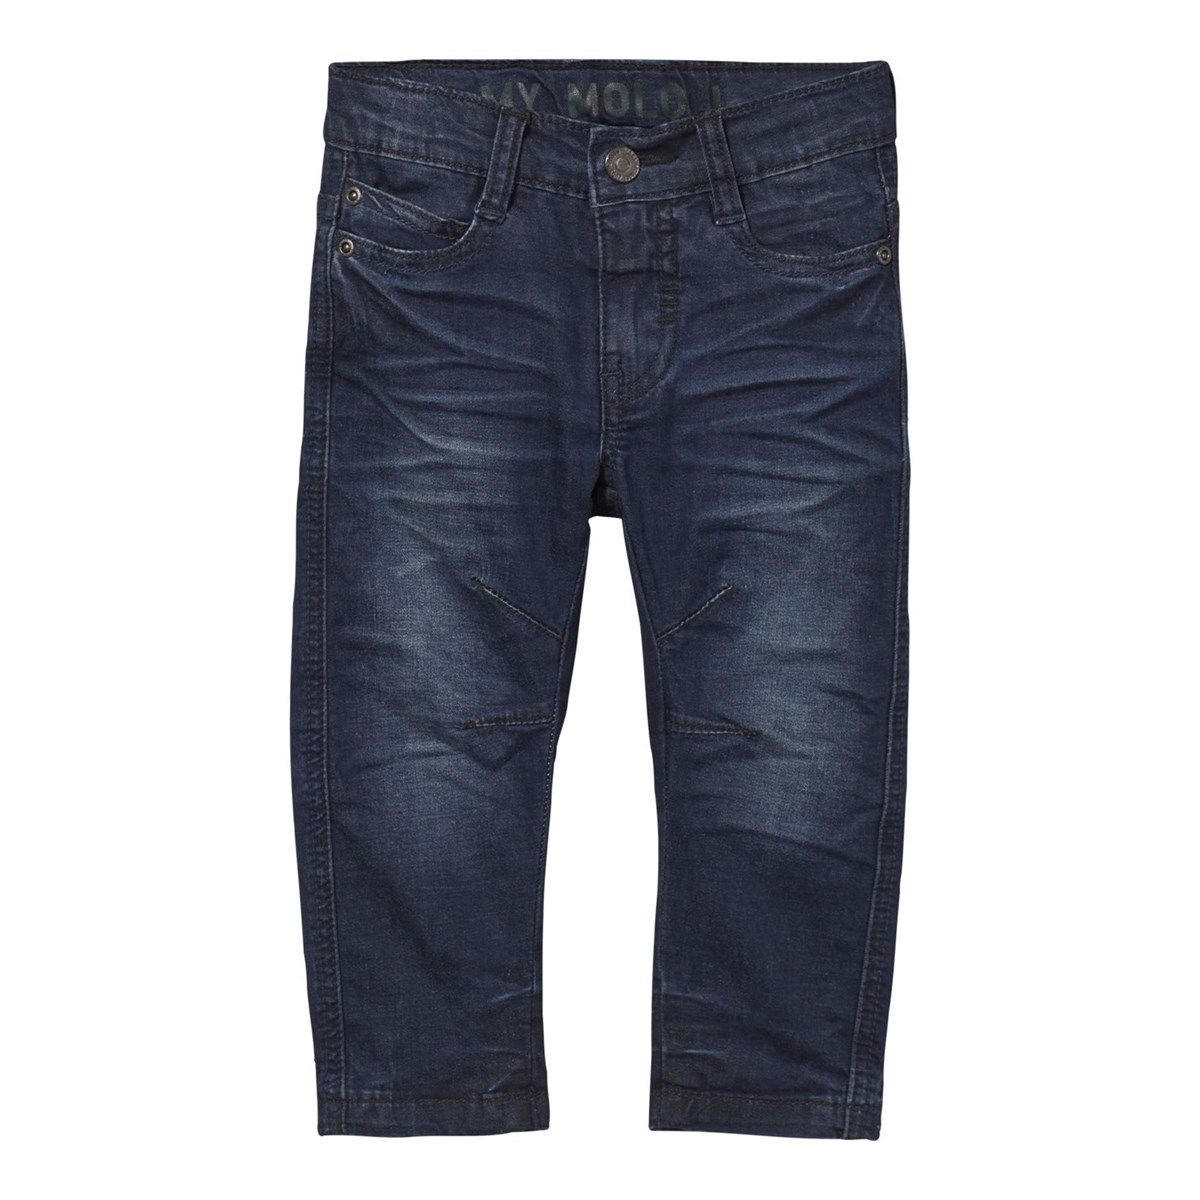 Bettwäsche Harley Davidson Molo Alonso Pants Deep Dusty Blue Babyshop